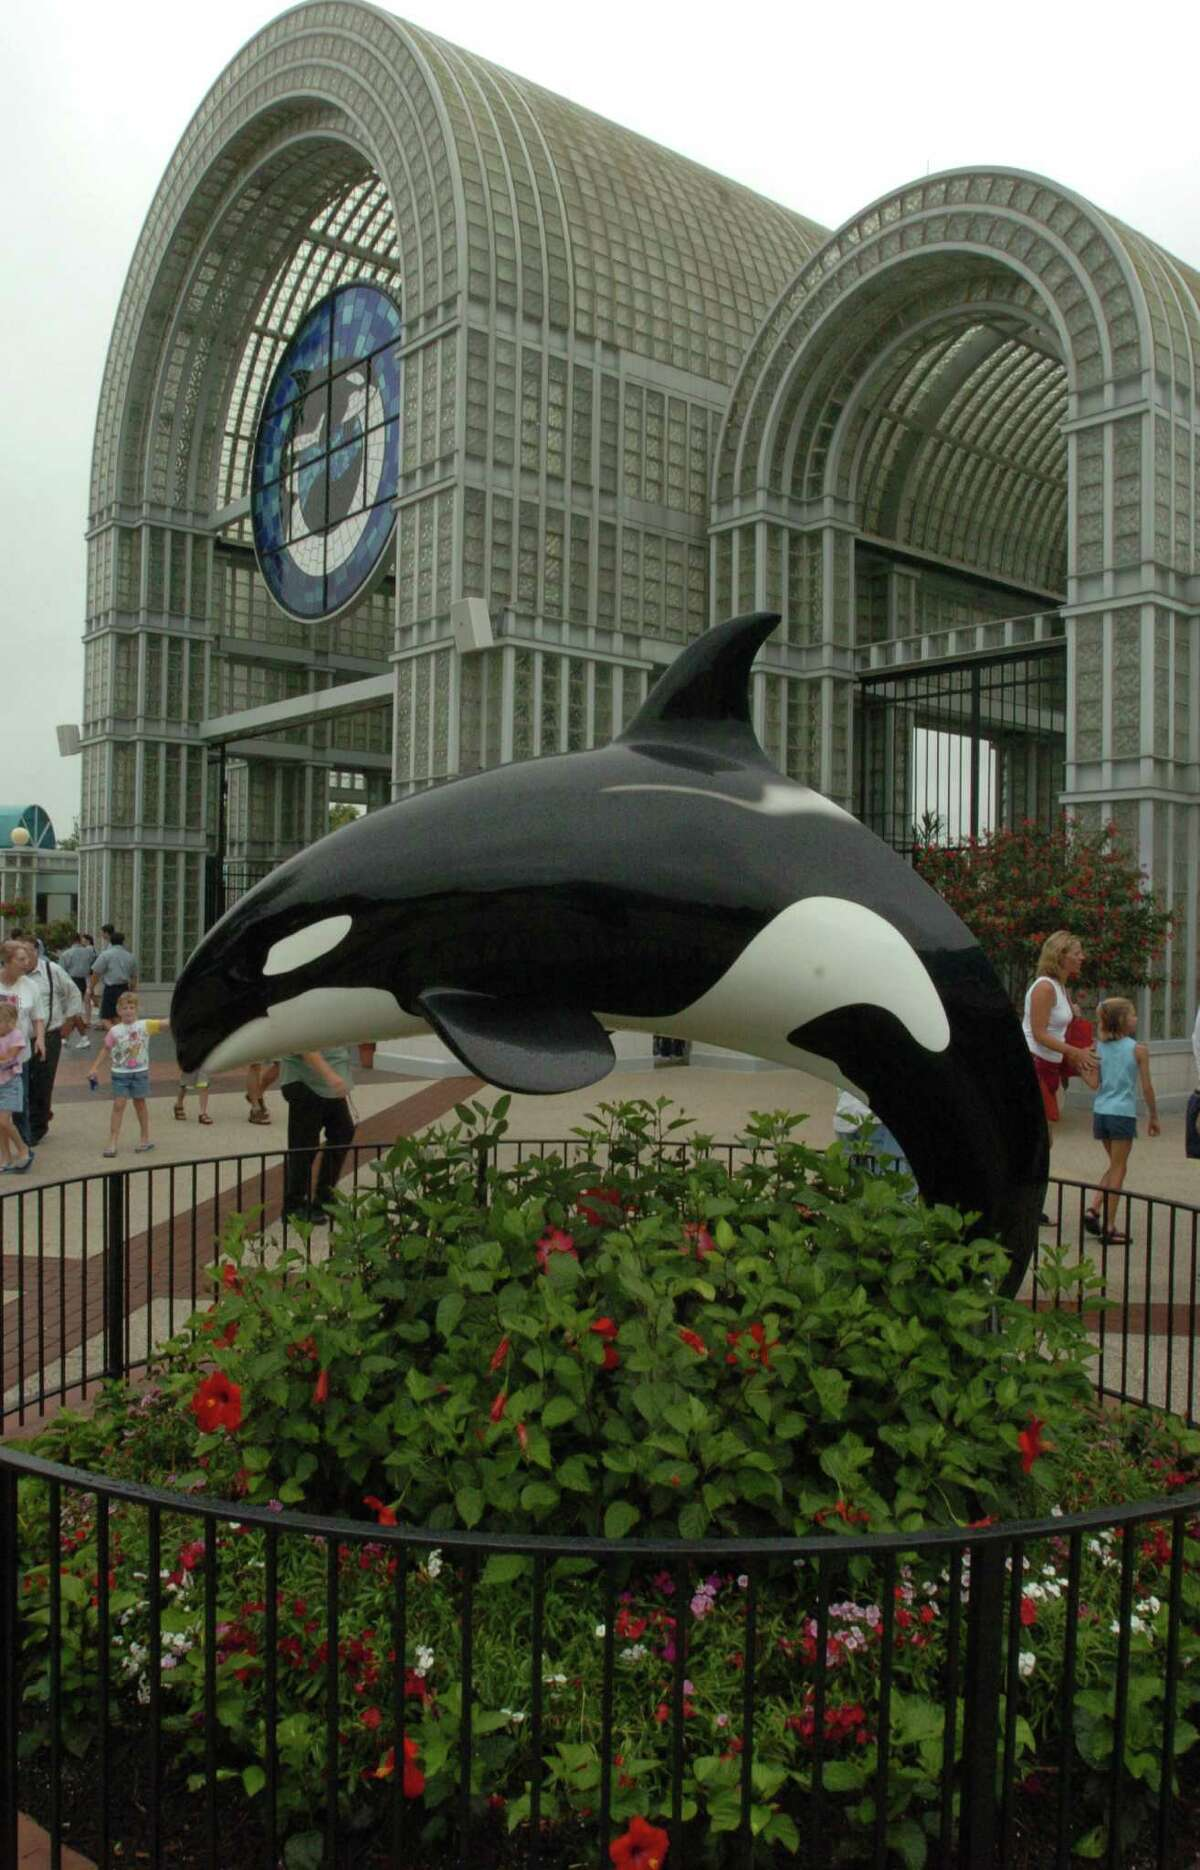 SeaWorld celebrated its 50th anniversary Friday, March 21, and we've compiled memorable moments since the San Antonio park opened 26 years ago. Click through the photos to see the following moments in photos.